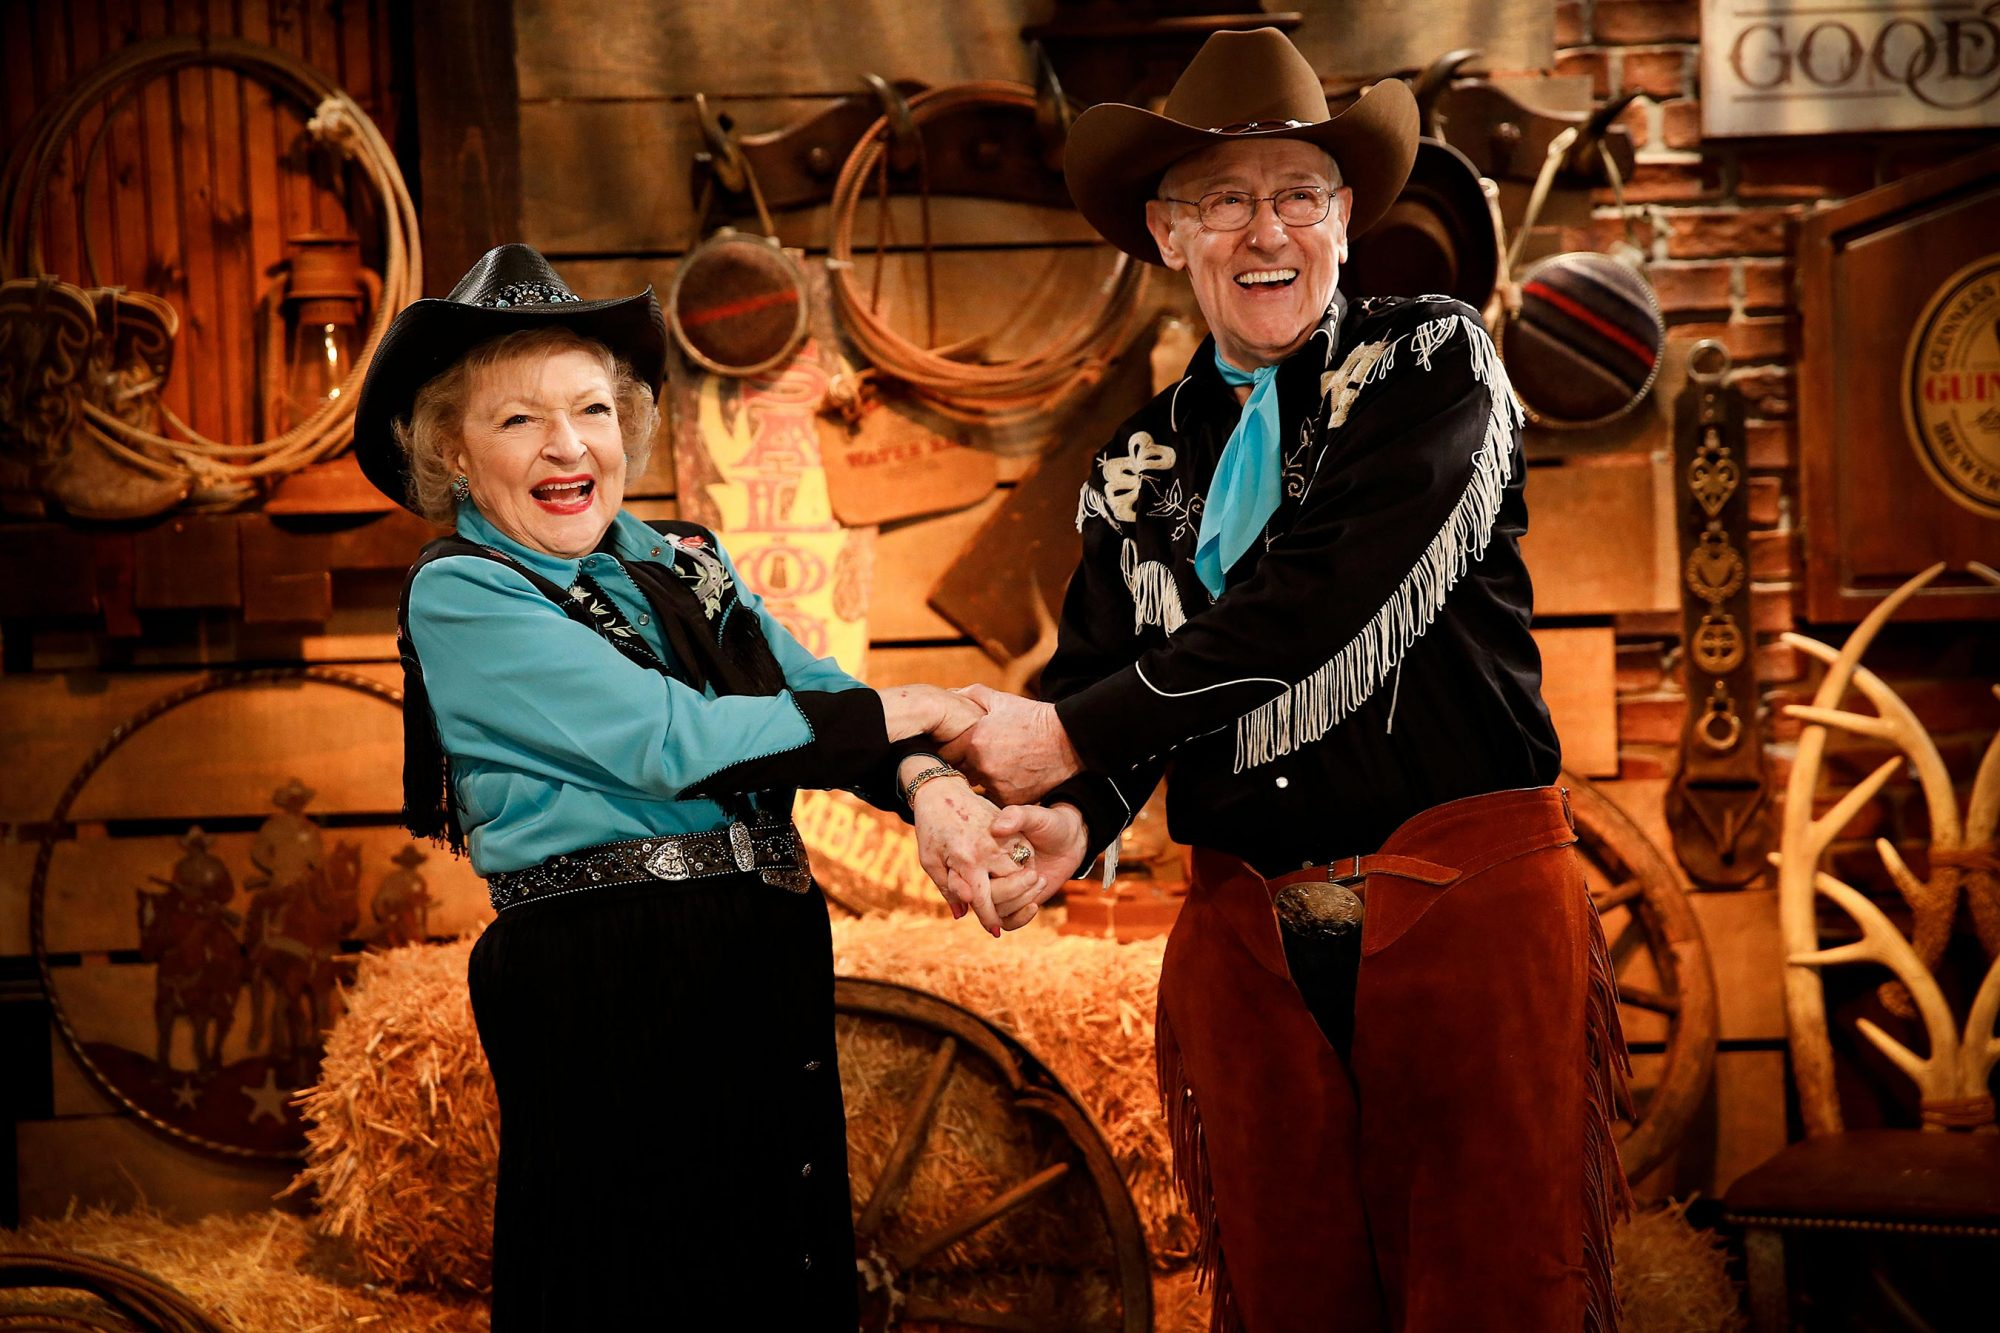 HOT IN CLEVELAND, l-r: Betty White, John Mahoney, in 'Rusty Banks Rides Again' (Season 5, Episode